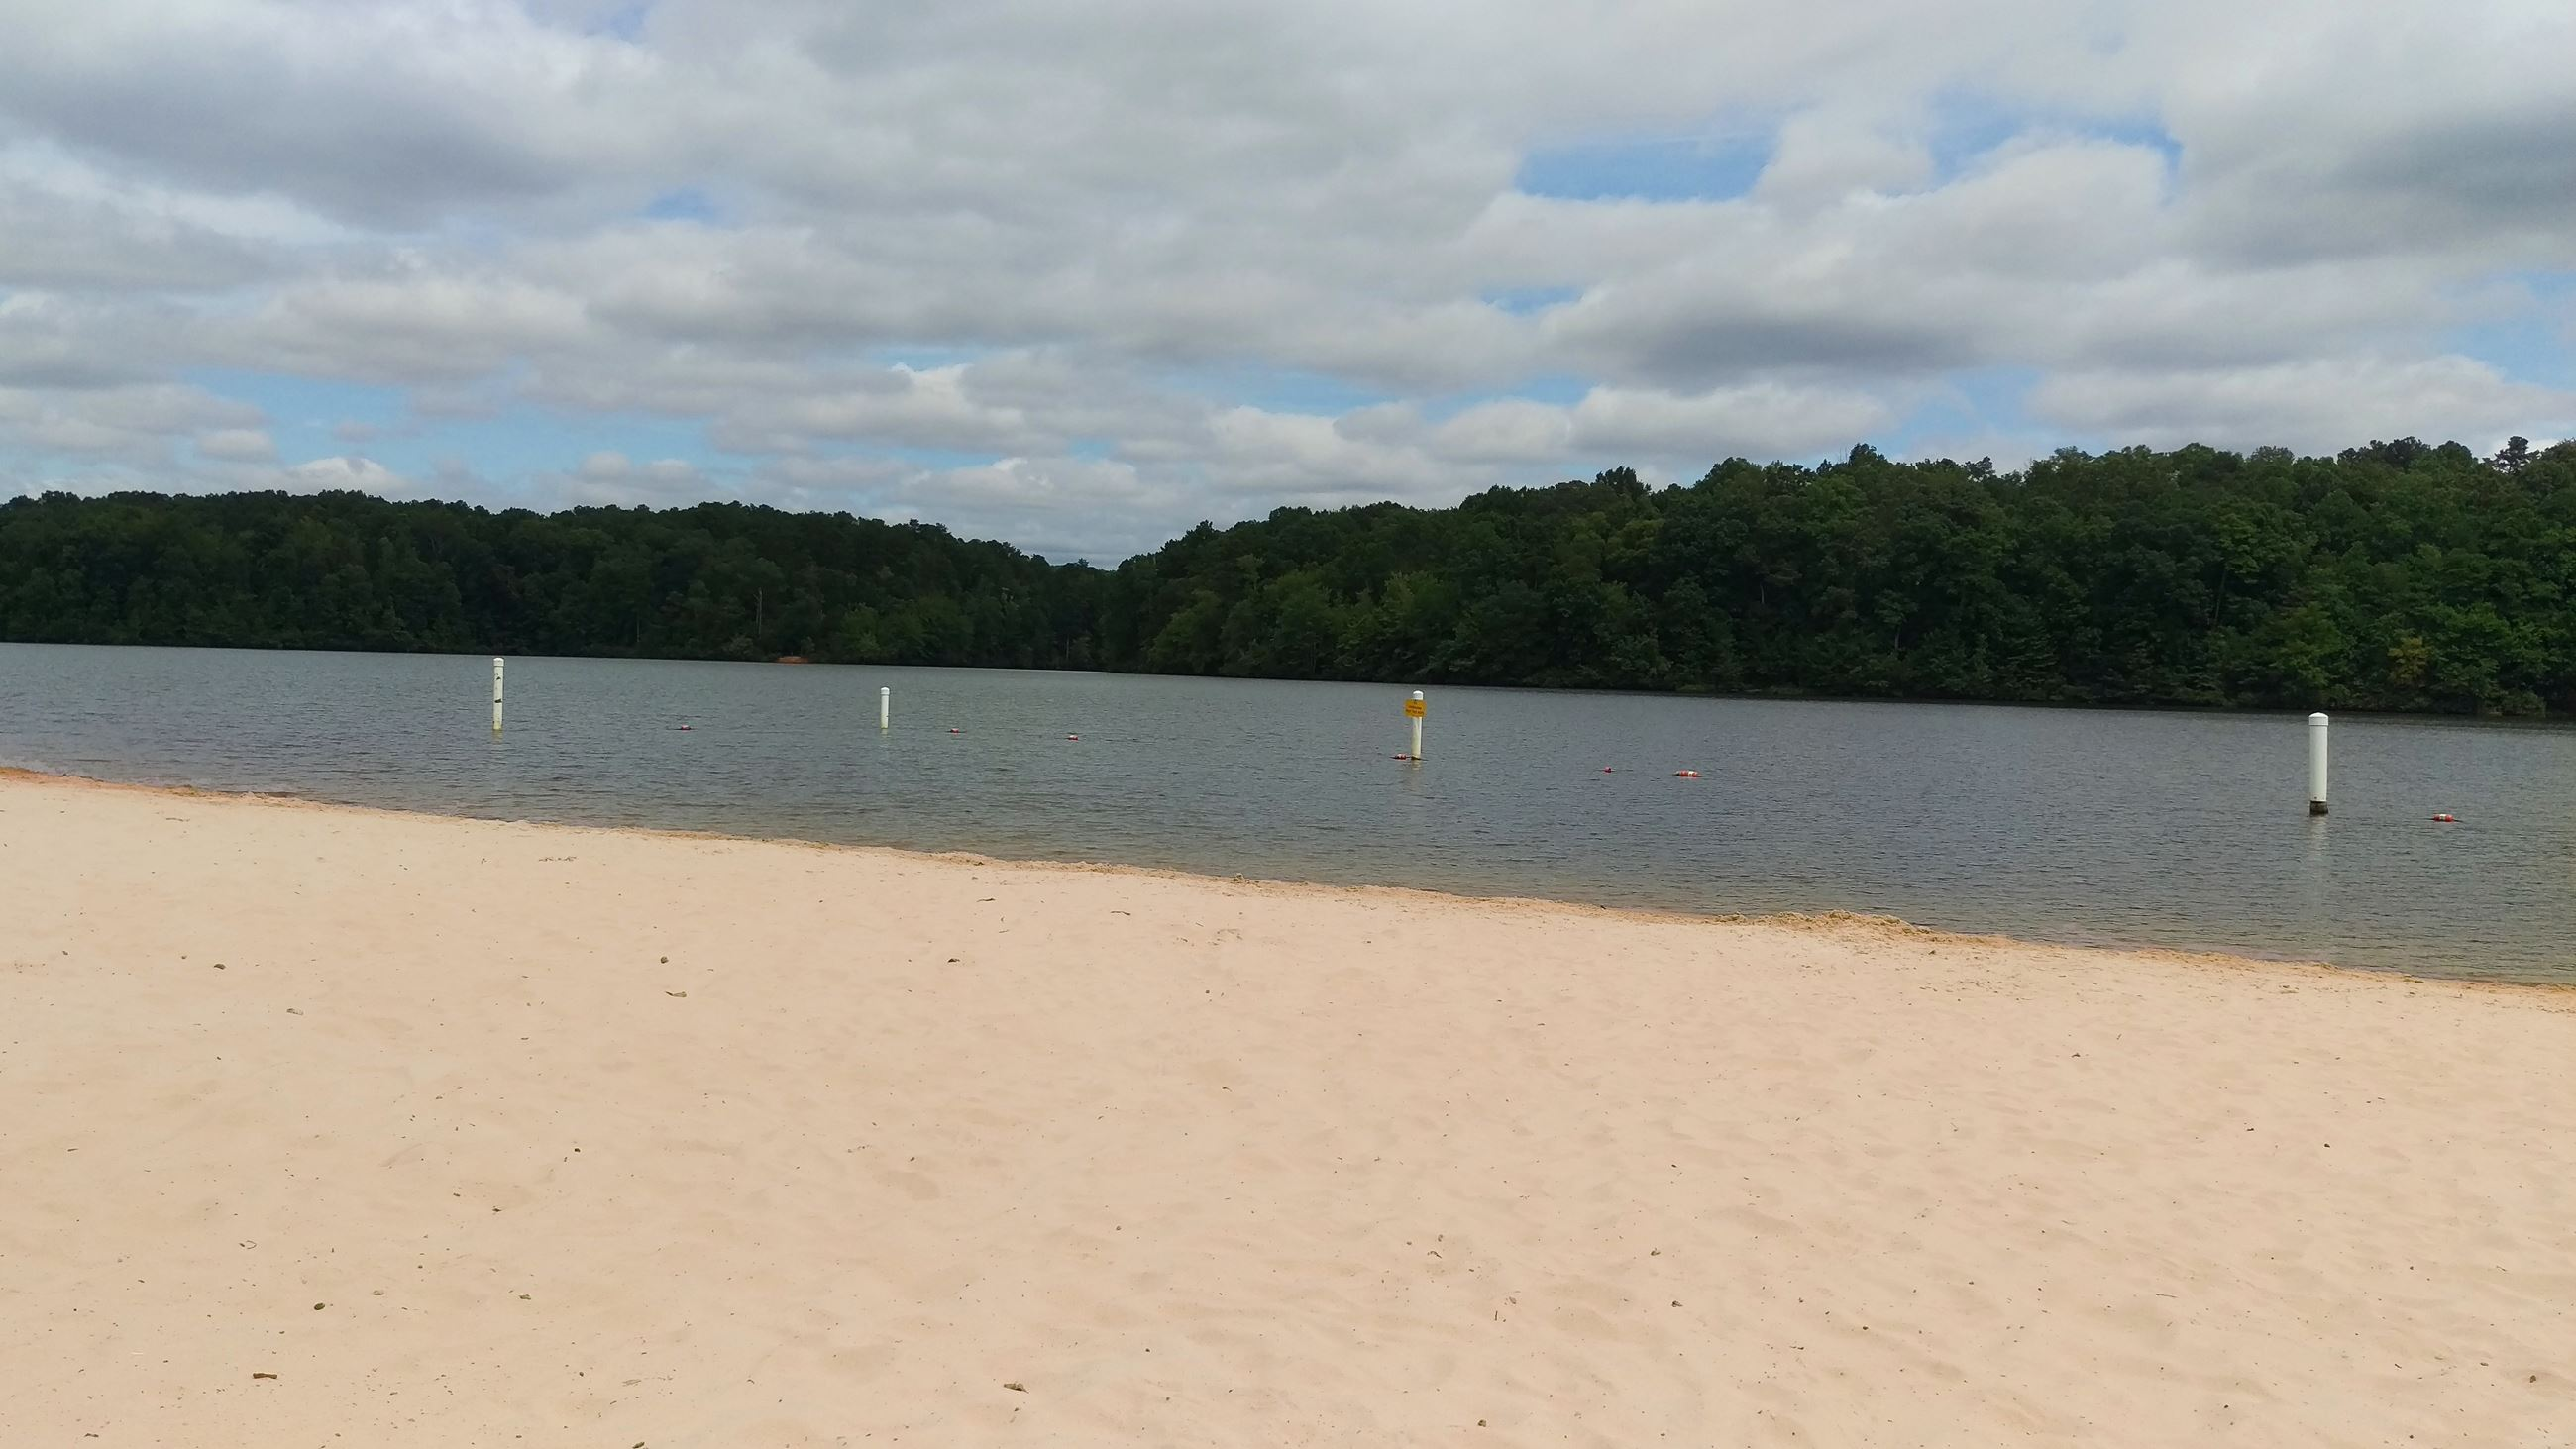 Photo of the Beach at Sandy Creek Park looking out across Lake Chapman.